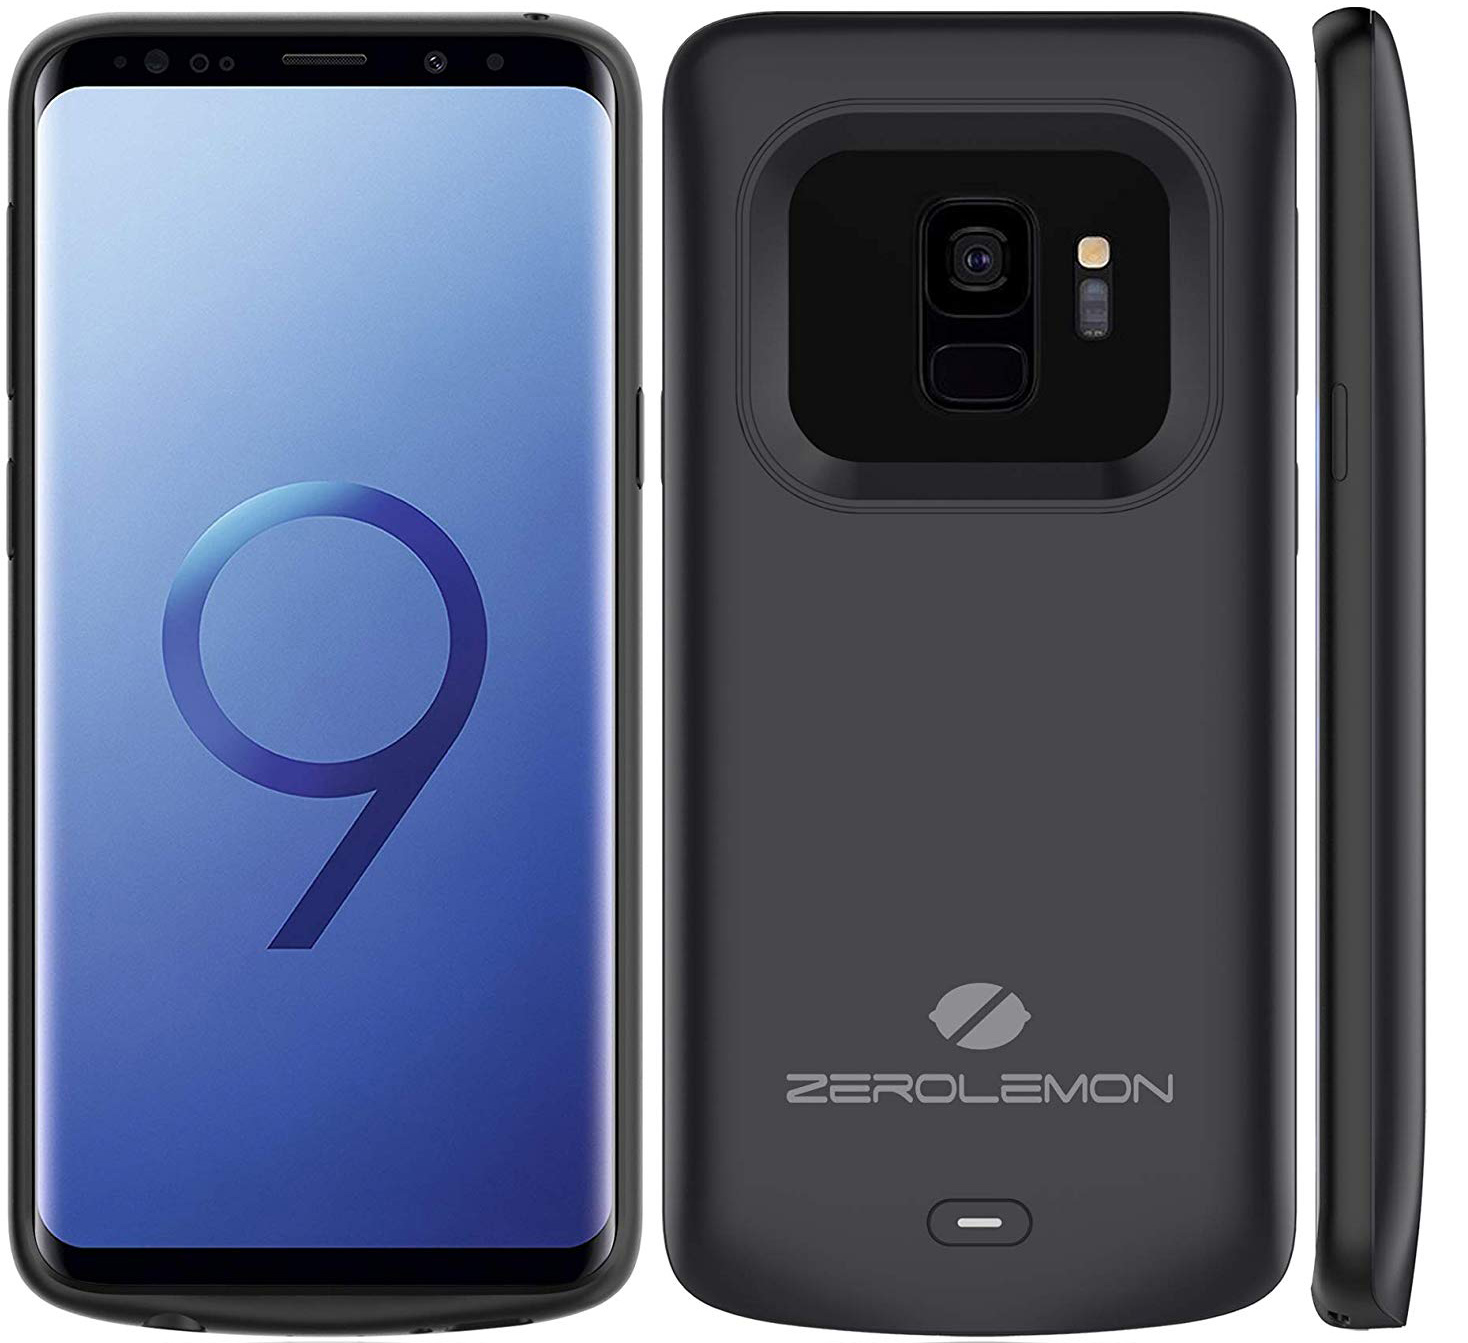 wholesale dealer 460bb 34dd9 The best battery cases for the Galaxy S9 and S9+ - AIVAnet